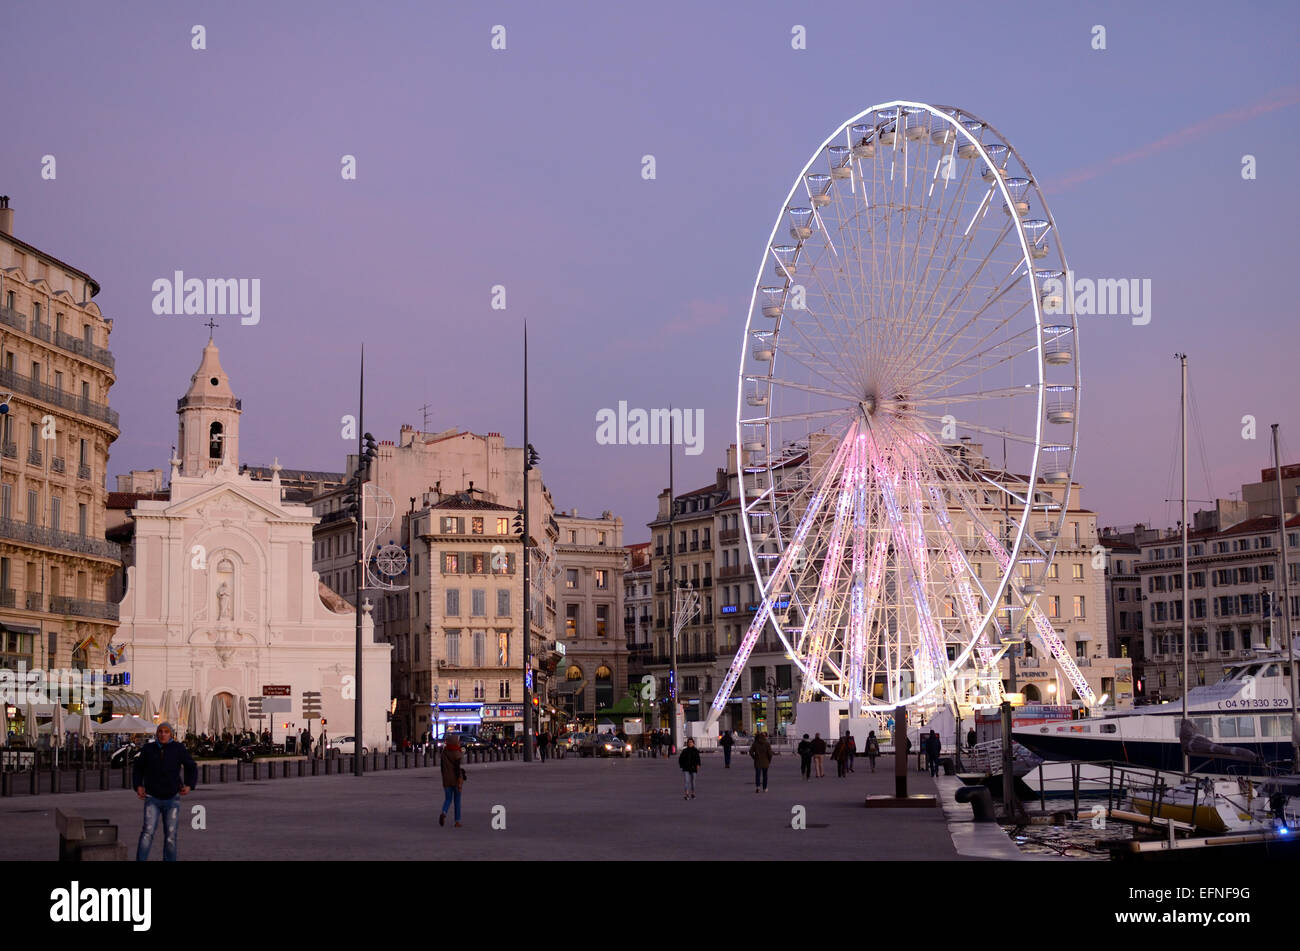 Old Port or Vieux Port with Quayside, Saint-Ferréol les Augustins Church and Ferris Wheel or Big Wheel at Night - Stock Image